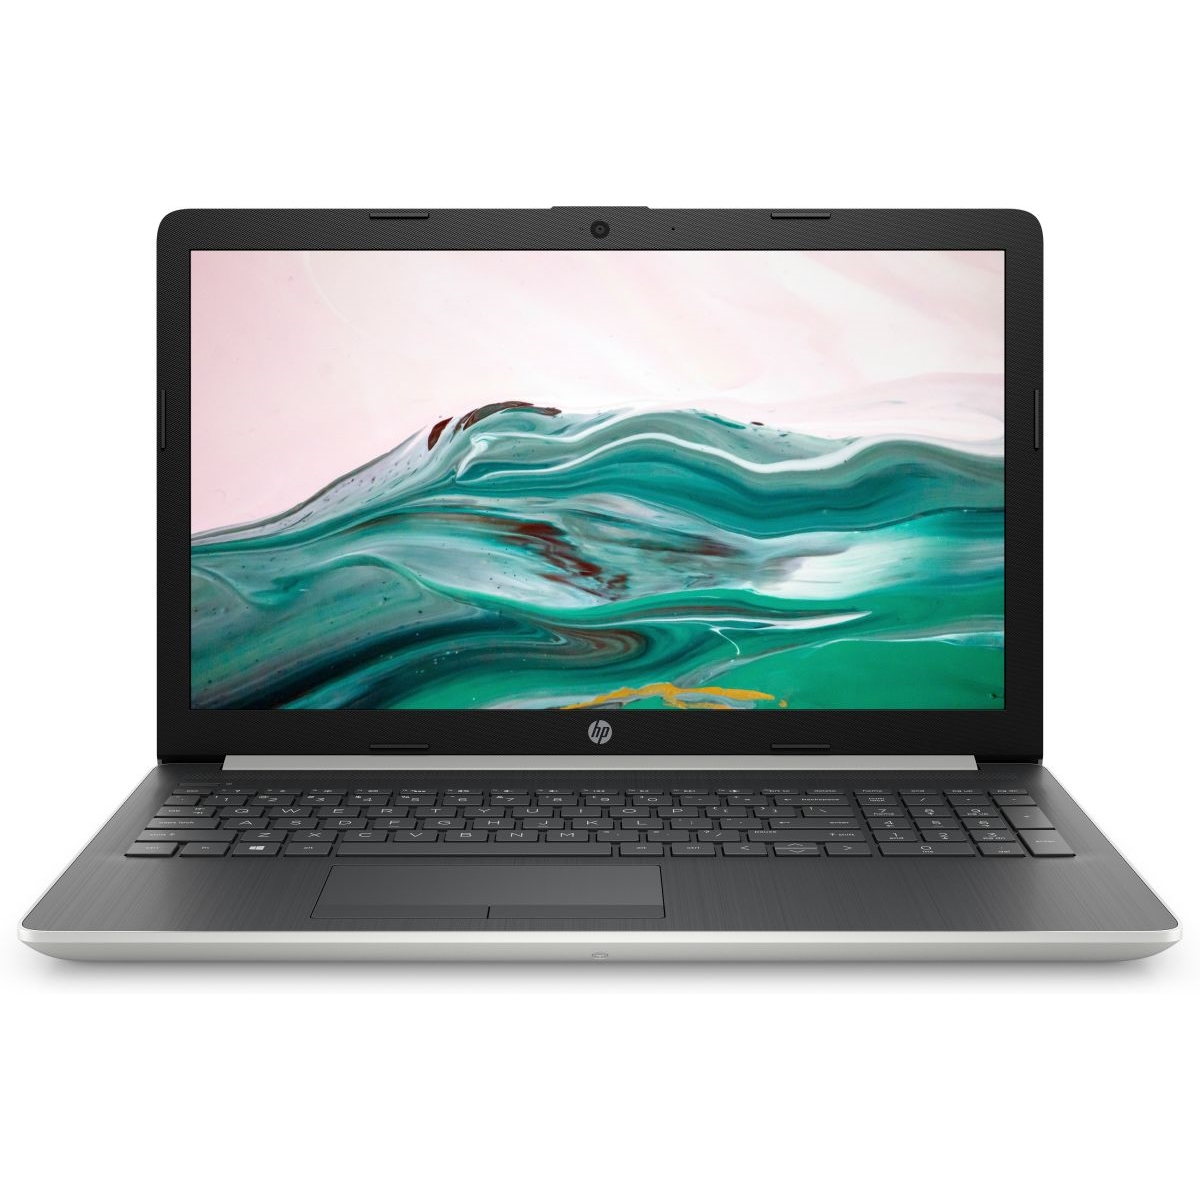 "HP 9CS97EA 15-DA2022NT I5-10210U 8GB 1TB 2GB GF MX110 15.6"" FHD FREEDOS SILVER NOTEBOOK"